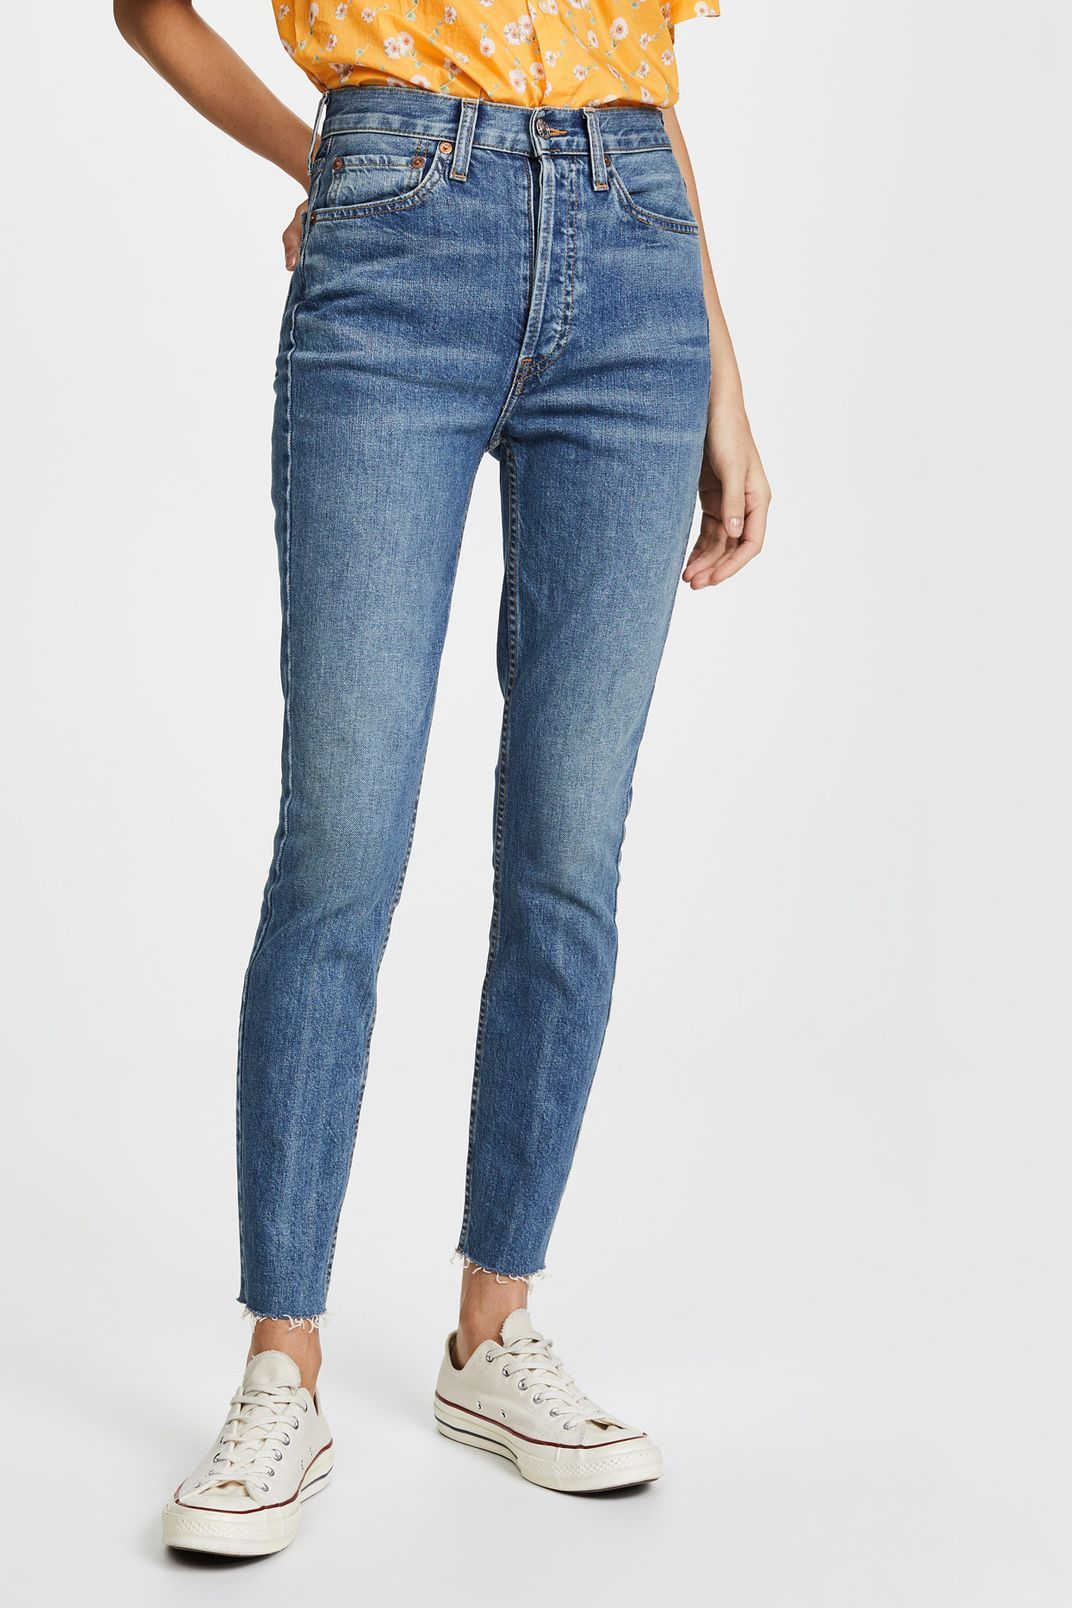 ff1b897b5b4 30 Best Jeans for Women of All Sizes and Styles 2019